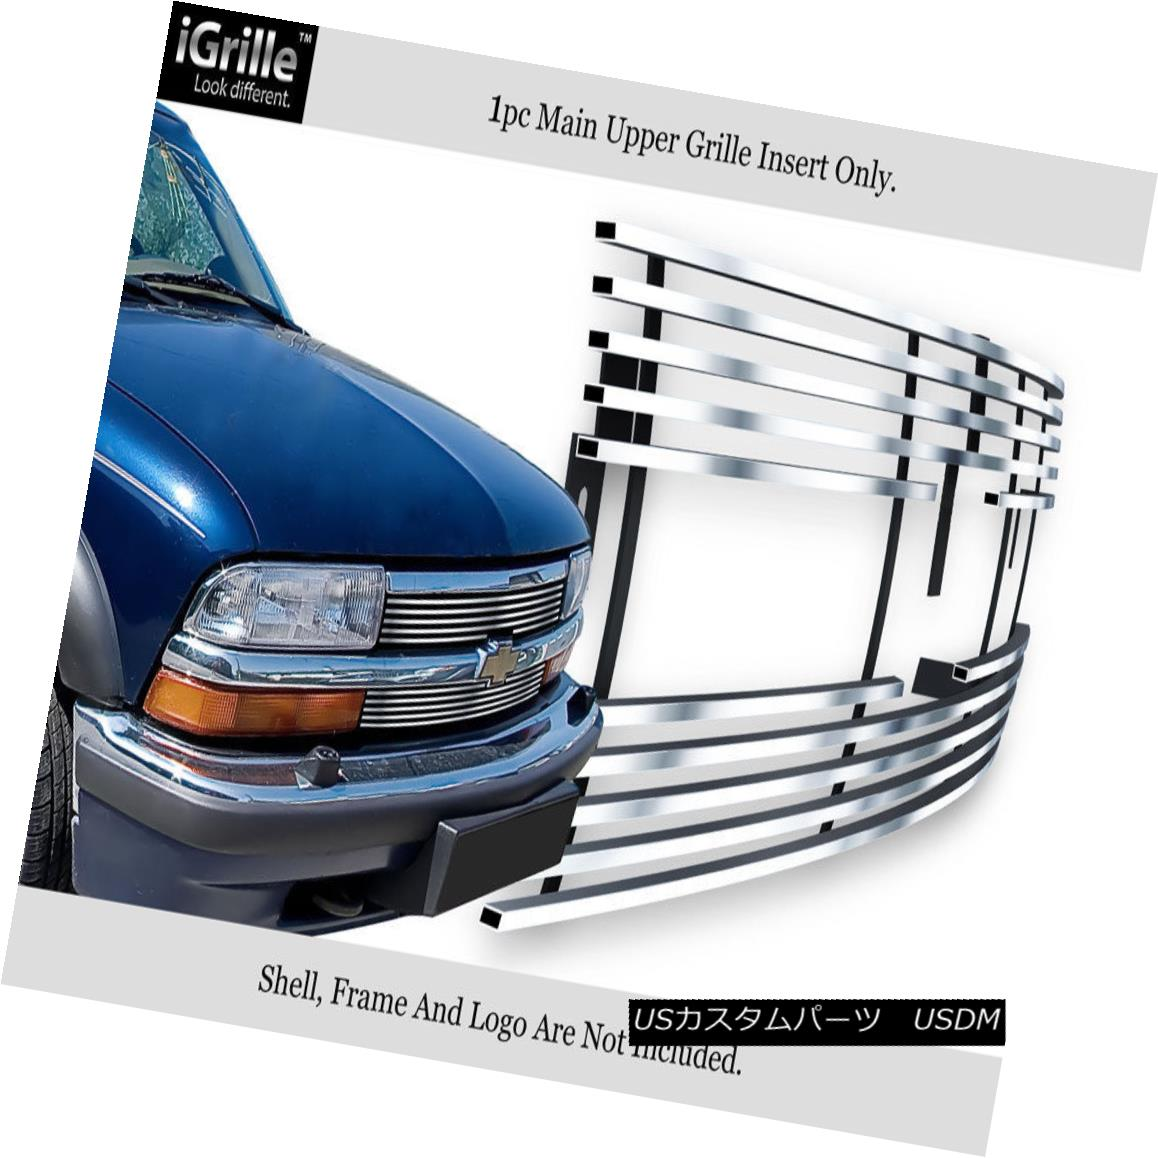 グリル Fits 98-04 Chevy S-10/Blazer Stainless Steel Billet Grille Insert フィット98-04 Chevy S-10 / Blazerステンレス鋼ビレットグリルインサート